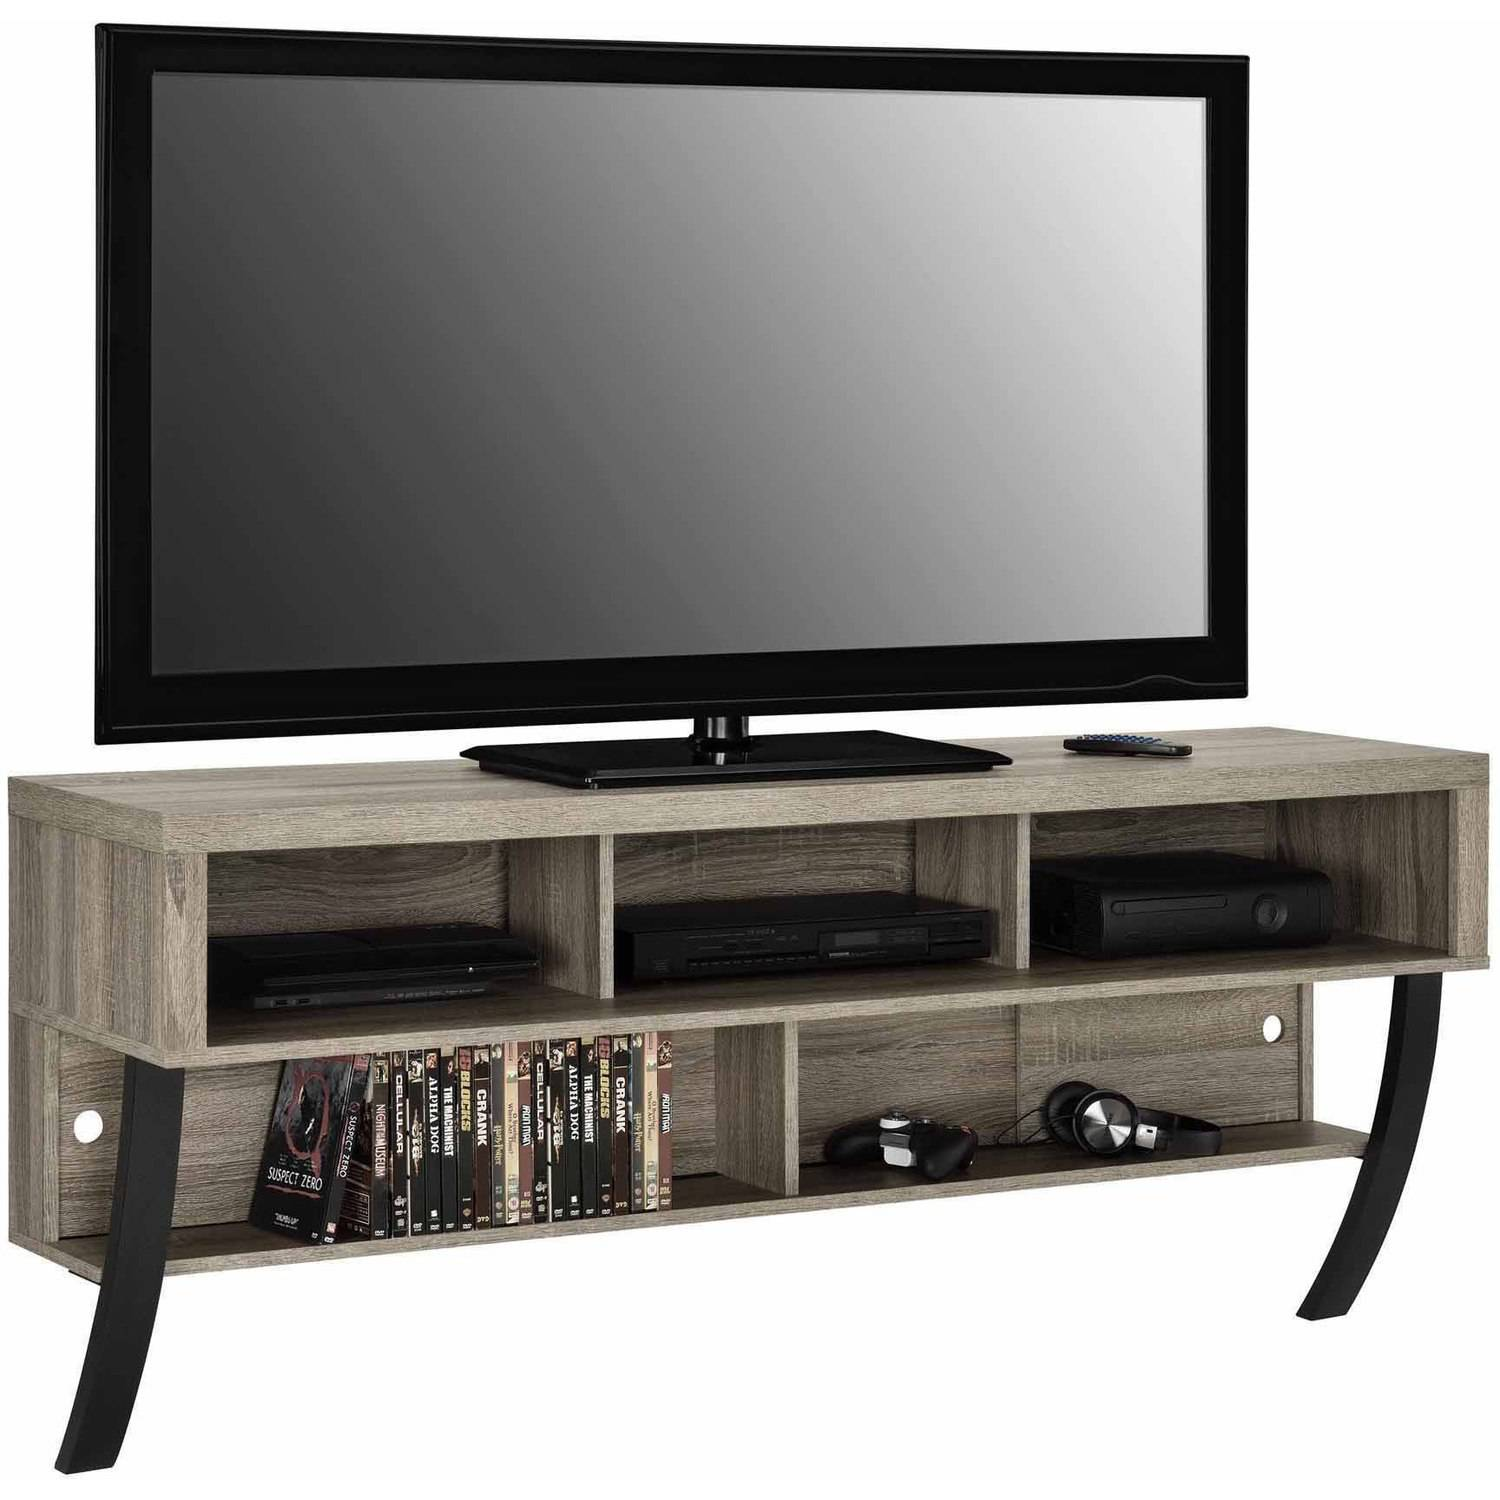 Superb Ameriwood Home Asher Wall Mounted TV Stand For TVs Up To 65 Amazing Ideas